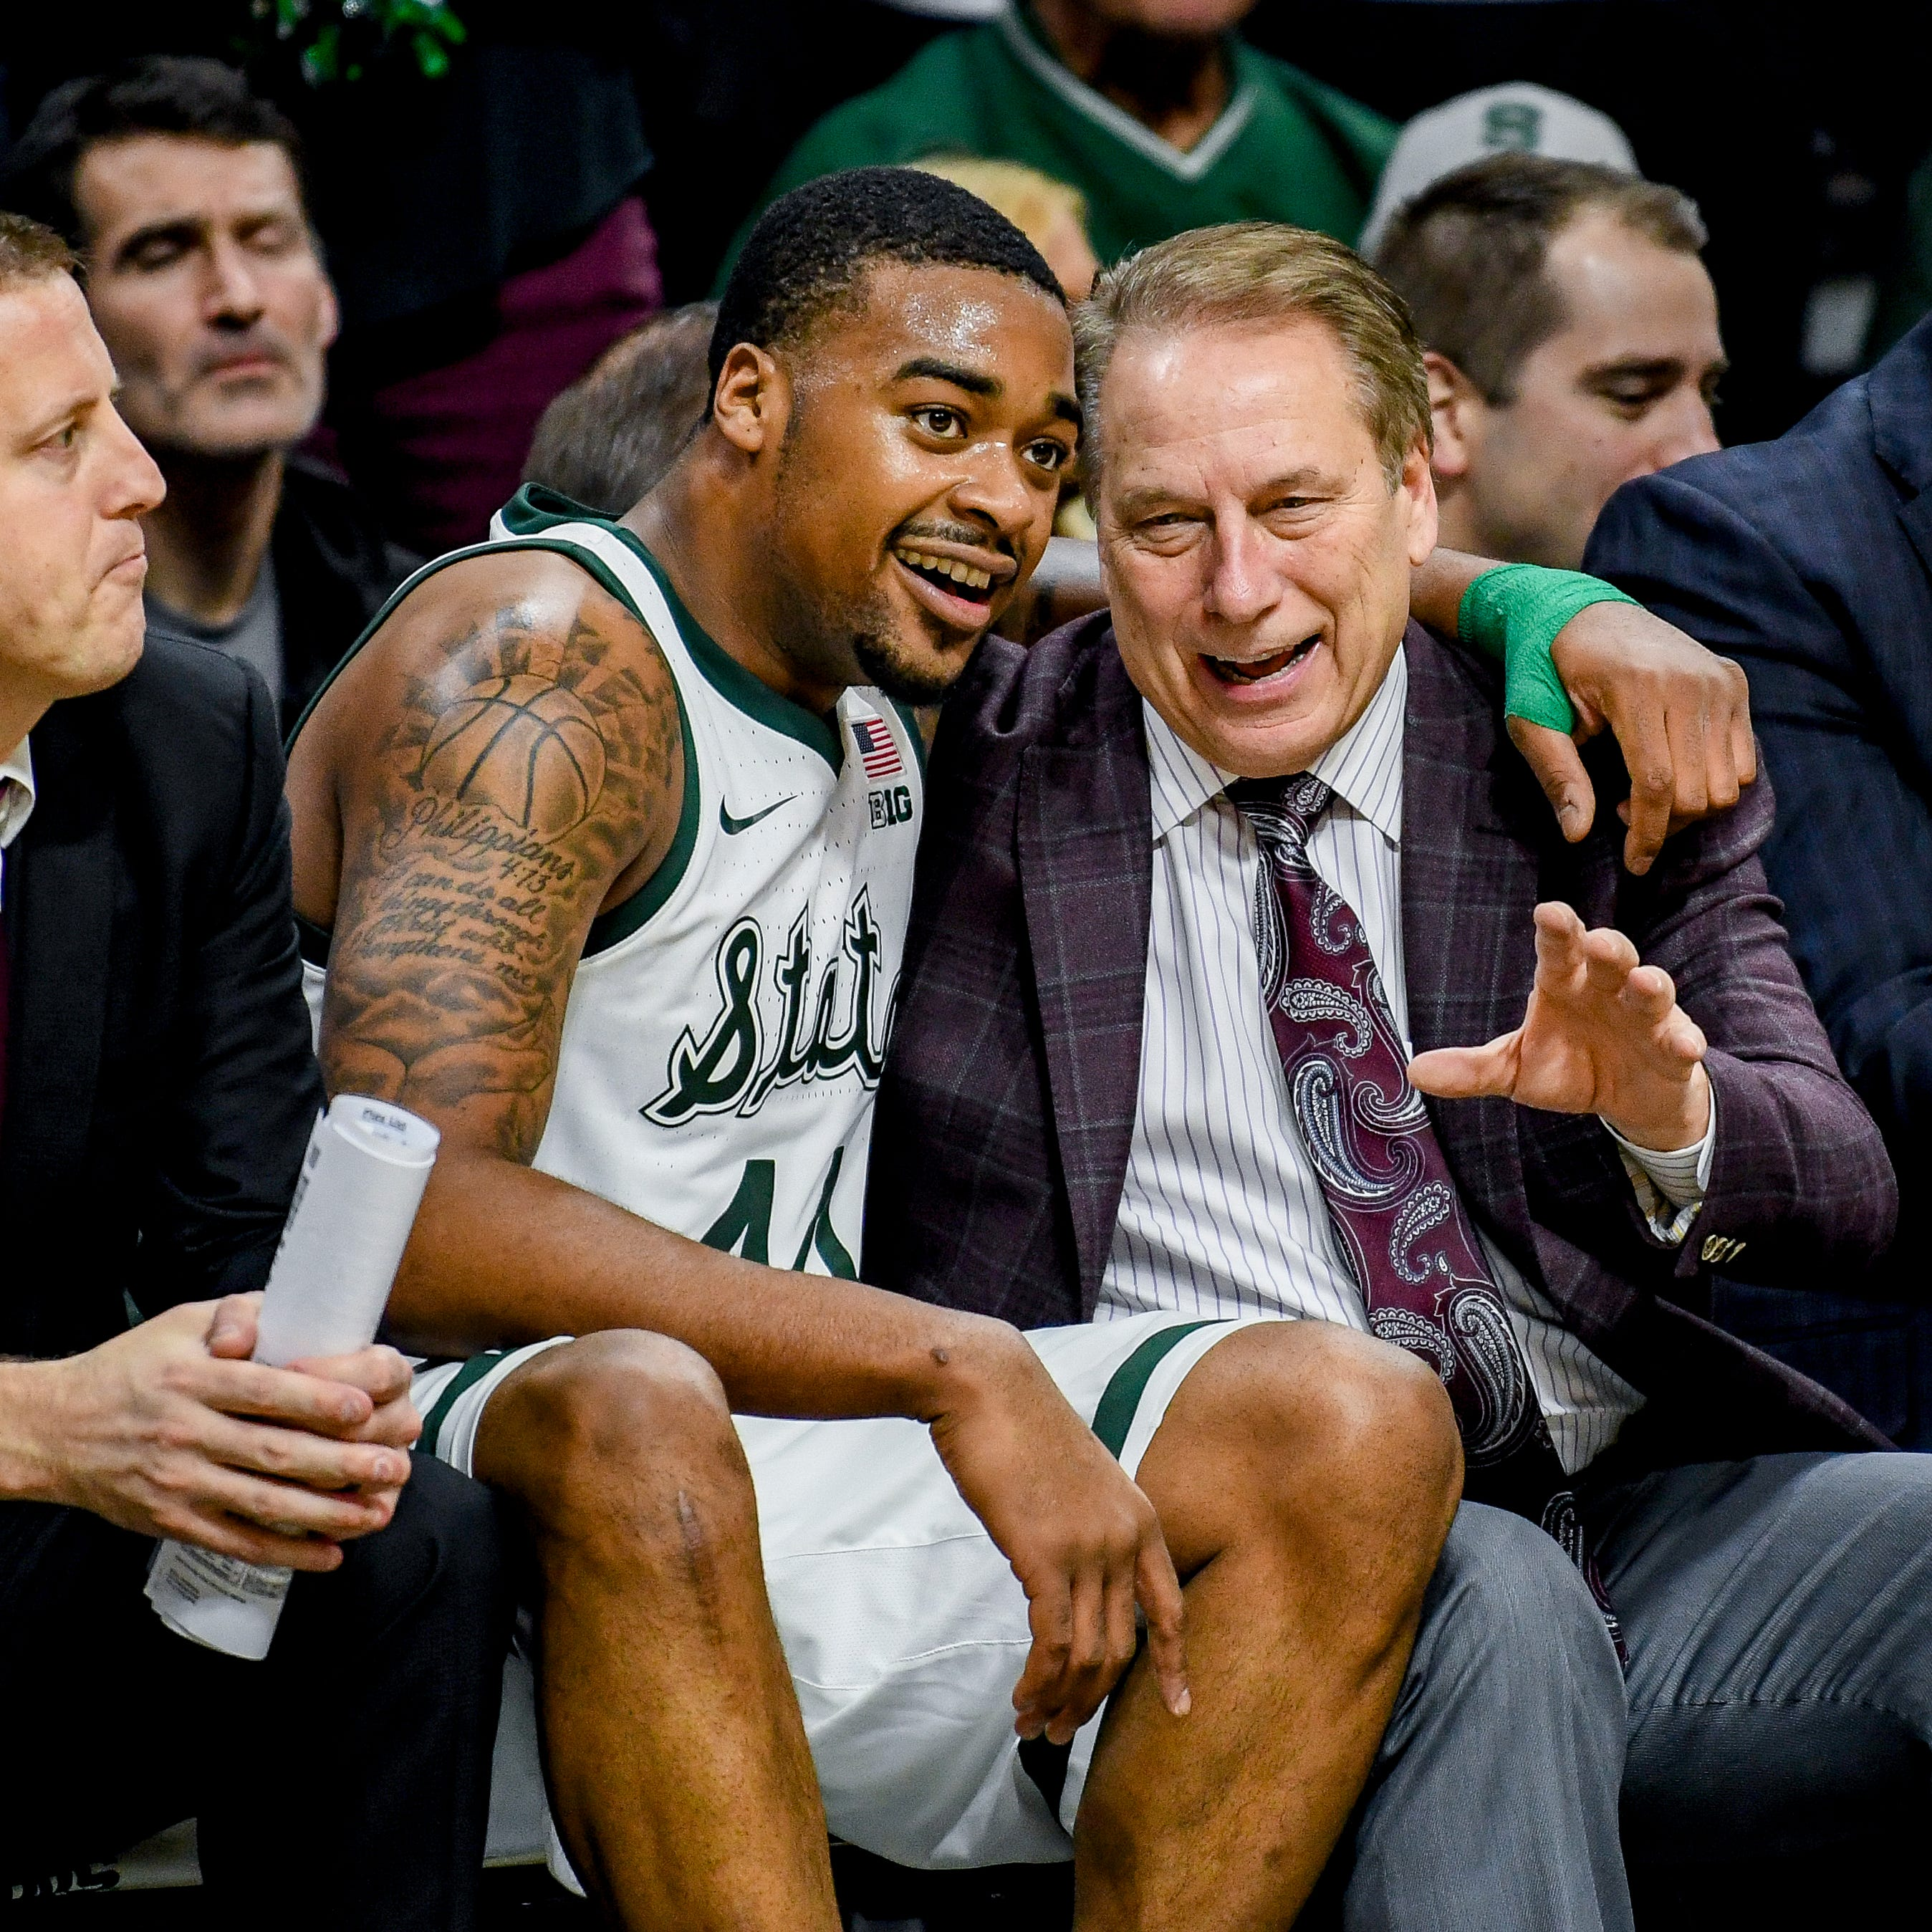 MSU basketball, football made-up mailbag: Why does Tom Izzo always lose recruits to Duke?